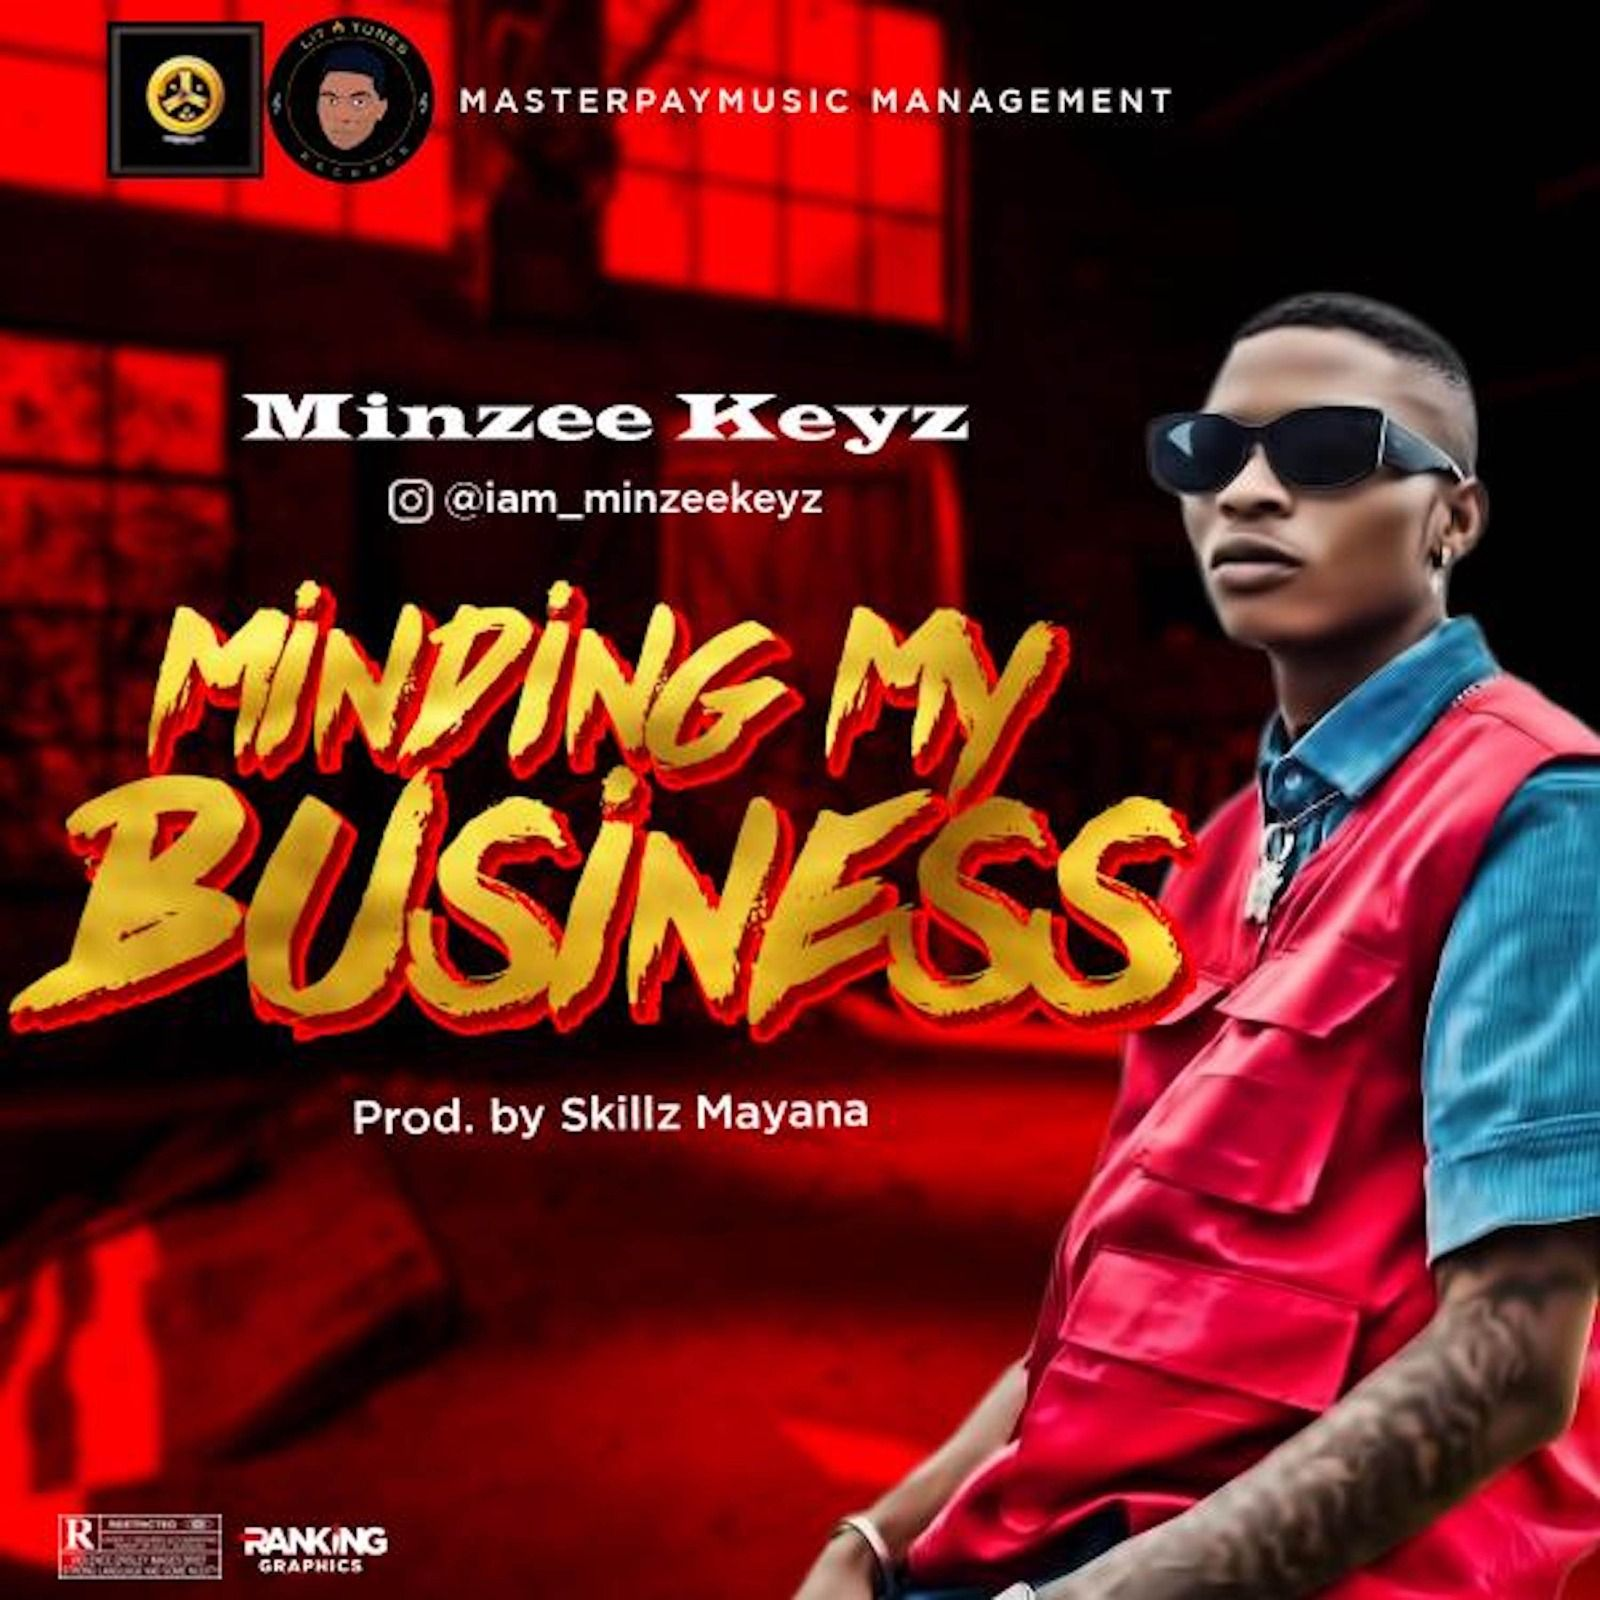 Minzee Keyz - Minding My Business